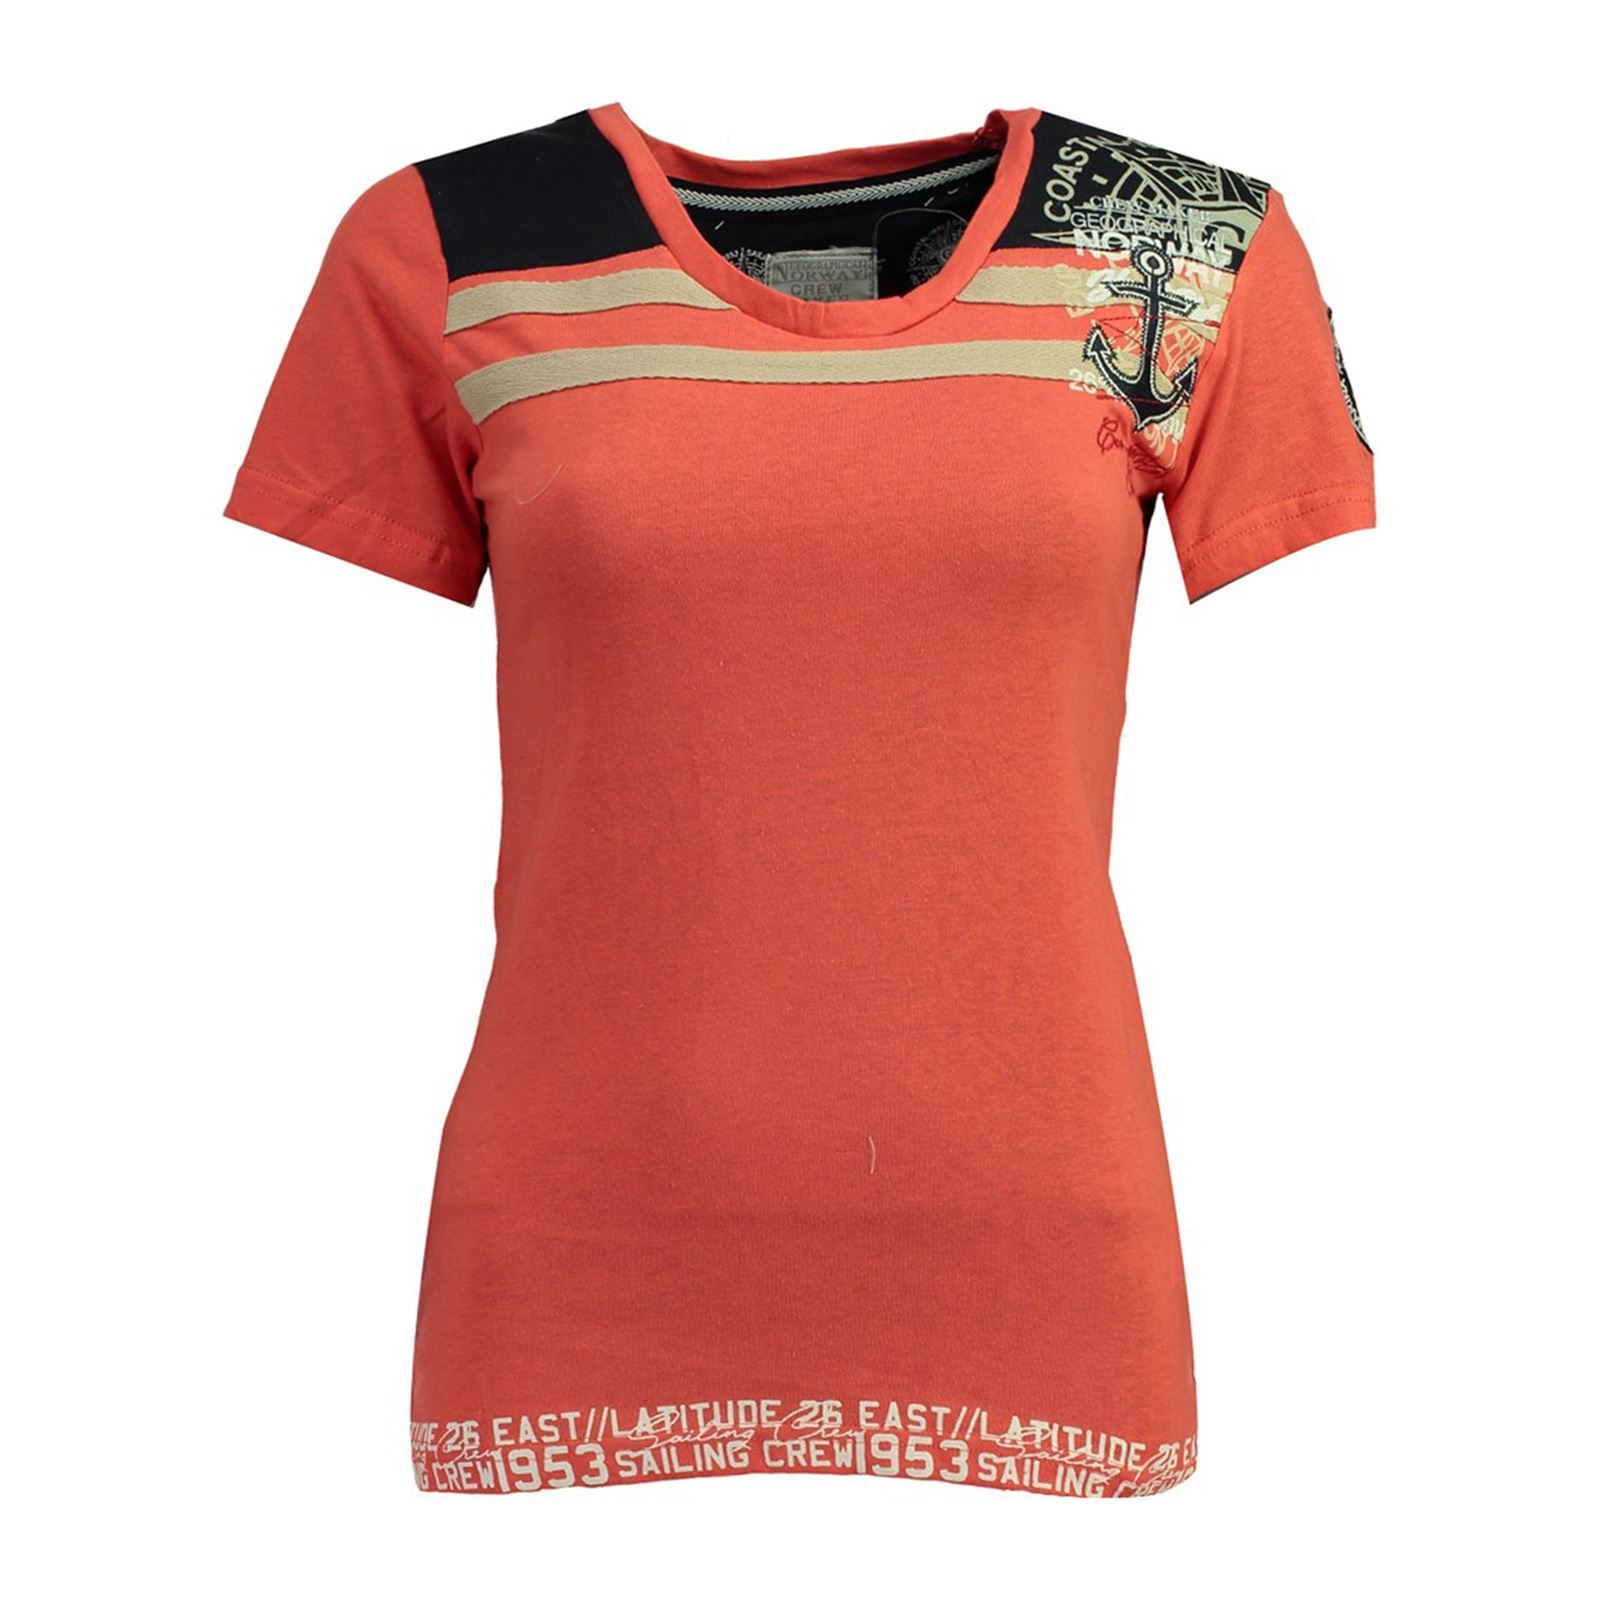 Norway shirt Manches Femme Geographical JrubisT Courtes Corail V m8n0vNwO